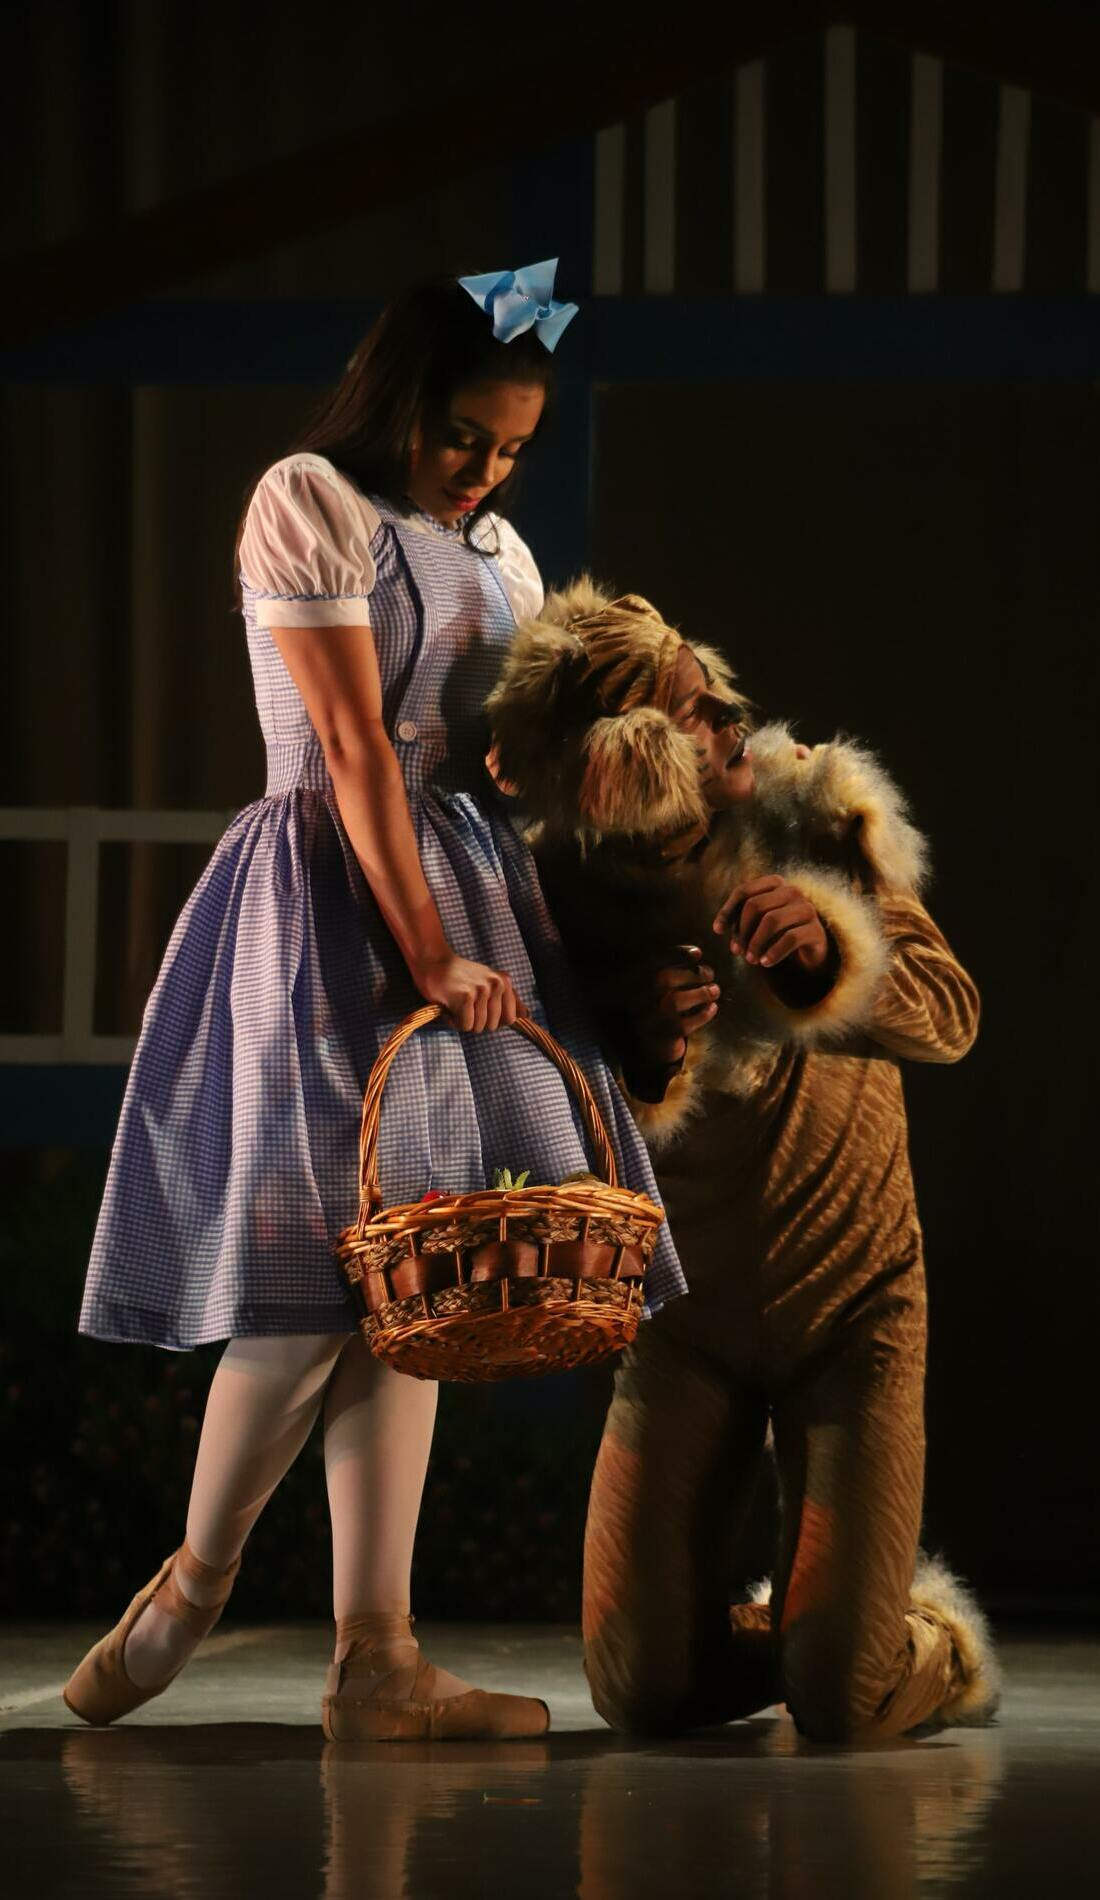 A The Wizard of Oz live event